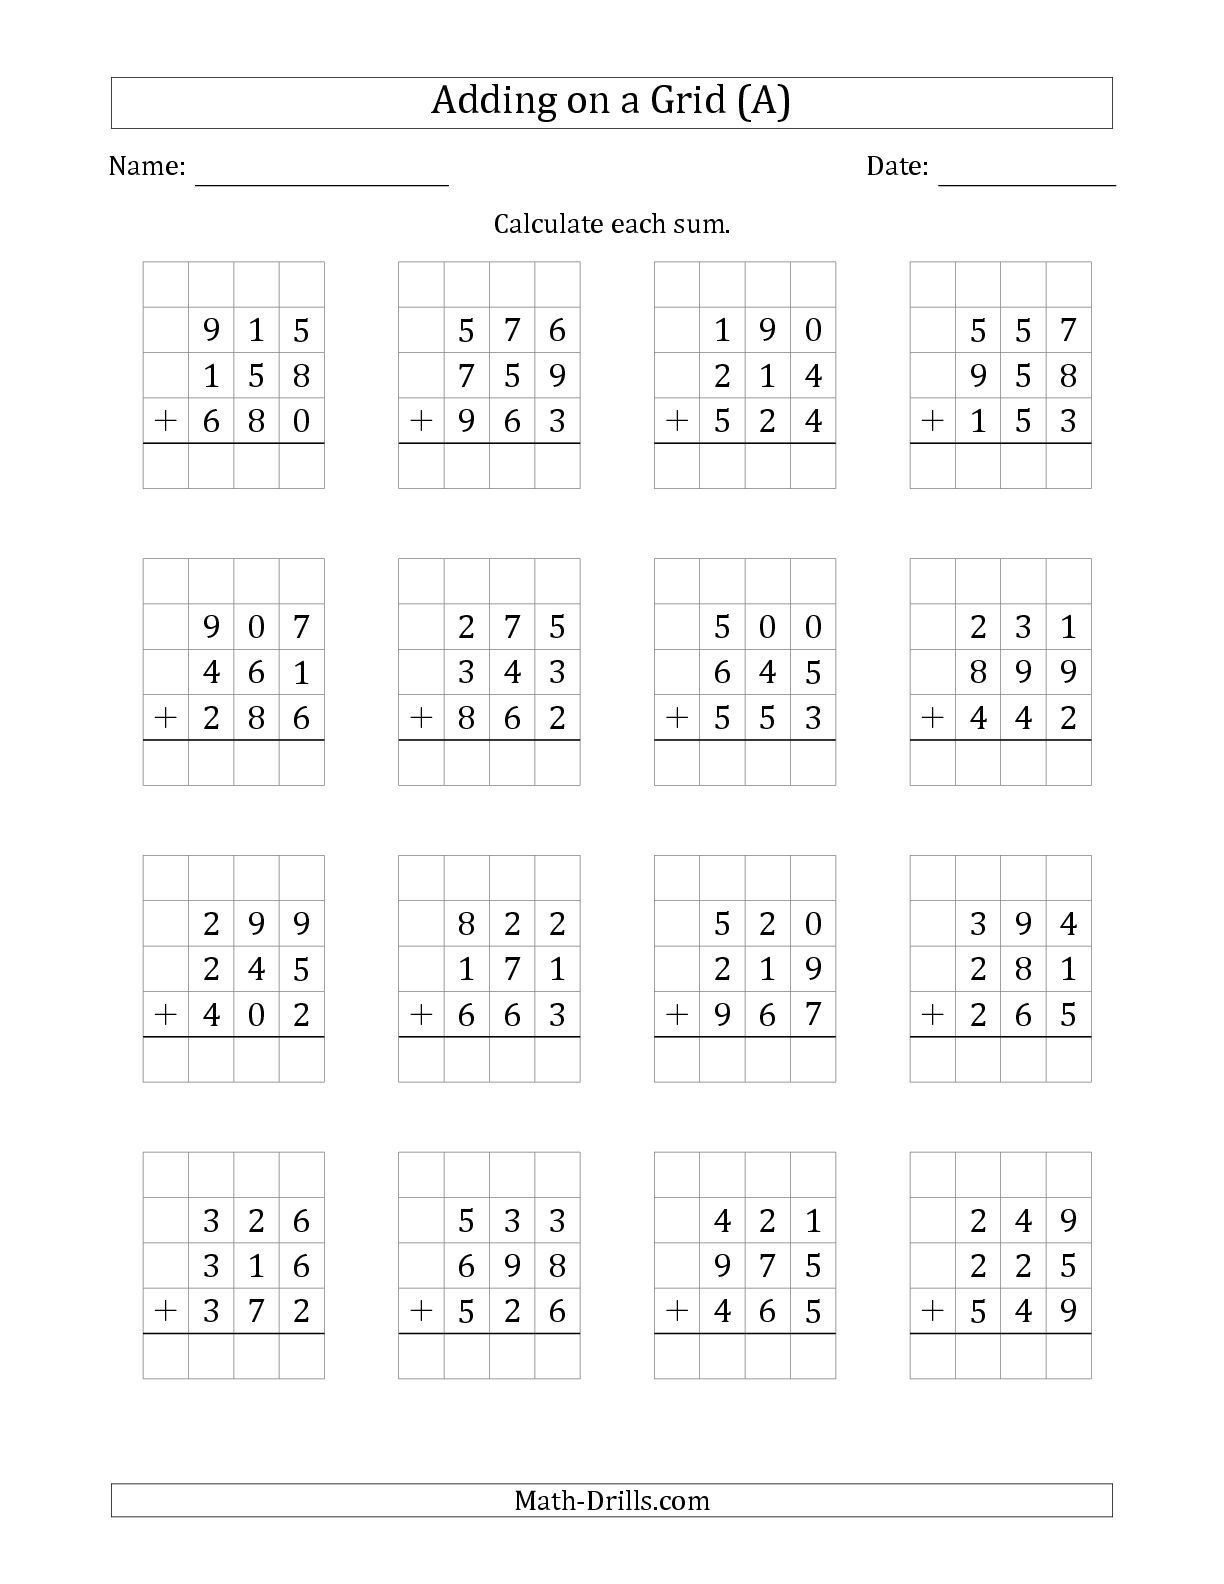 Adding Three Numbers Worksheets the Adding Three 3 Digit Numbers On A Grid A Math